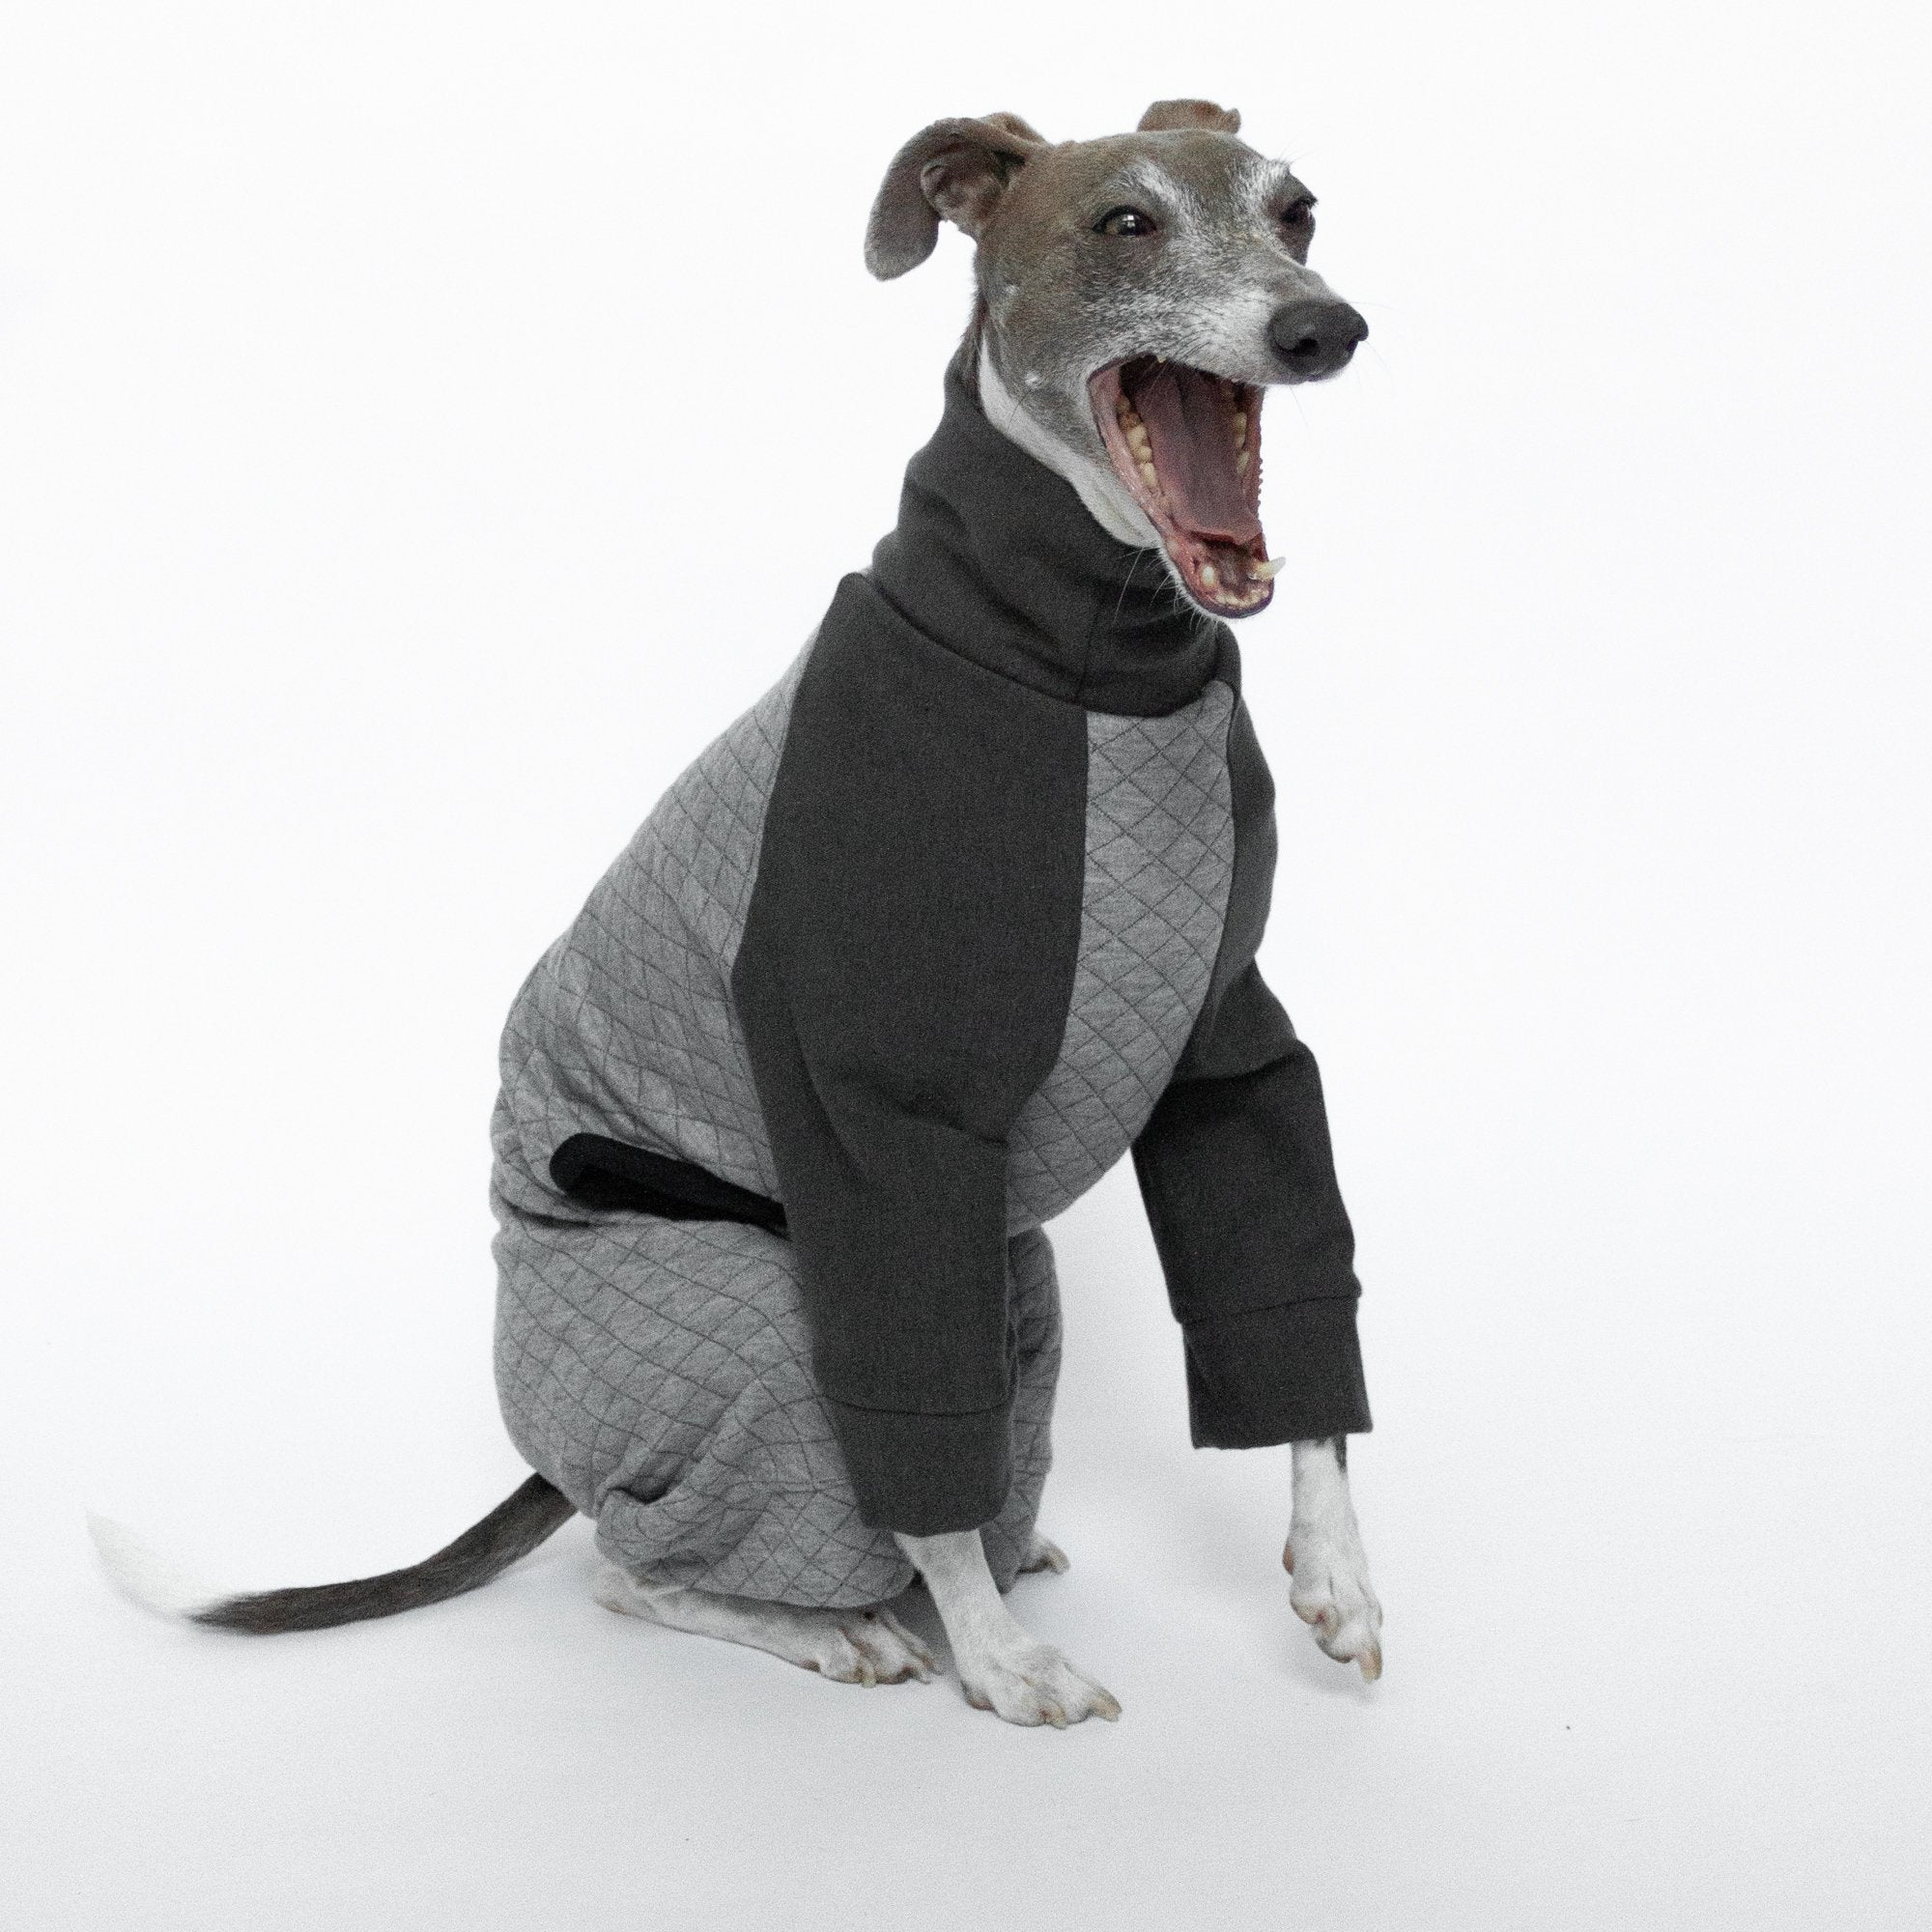 Kuvfur-dog-pajamas-onesie-quilted-grey-greyhound